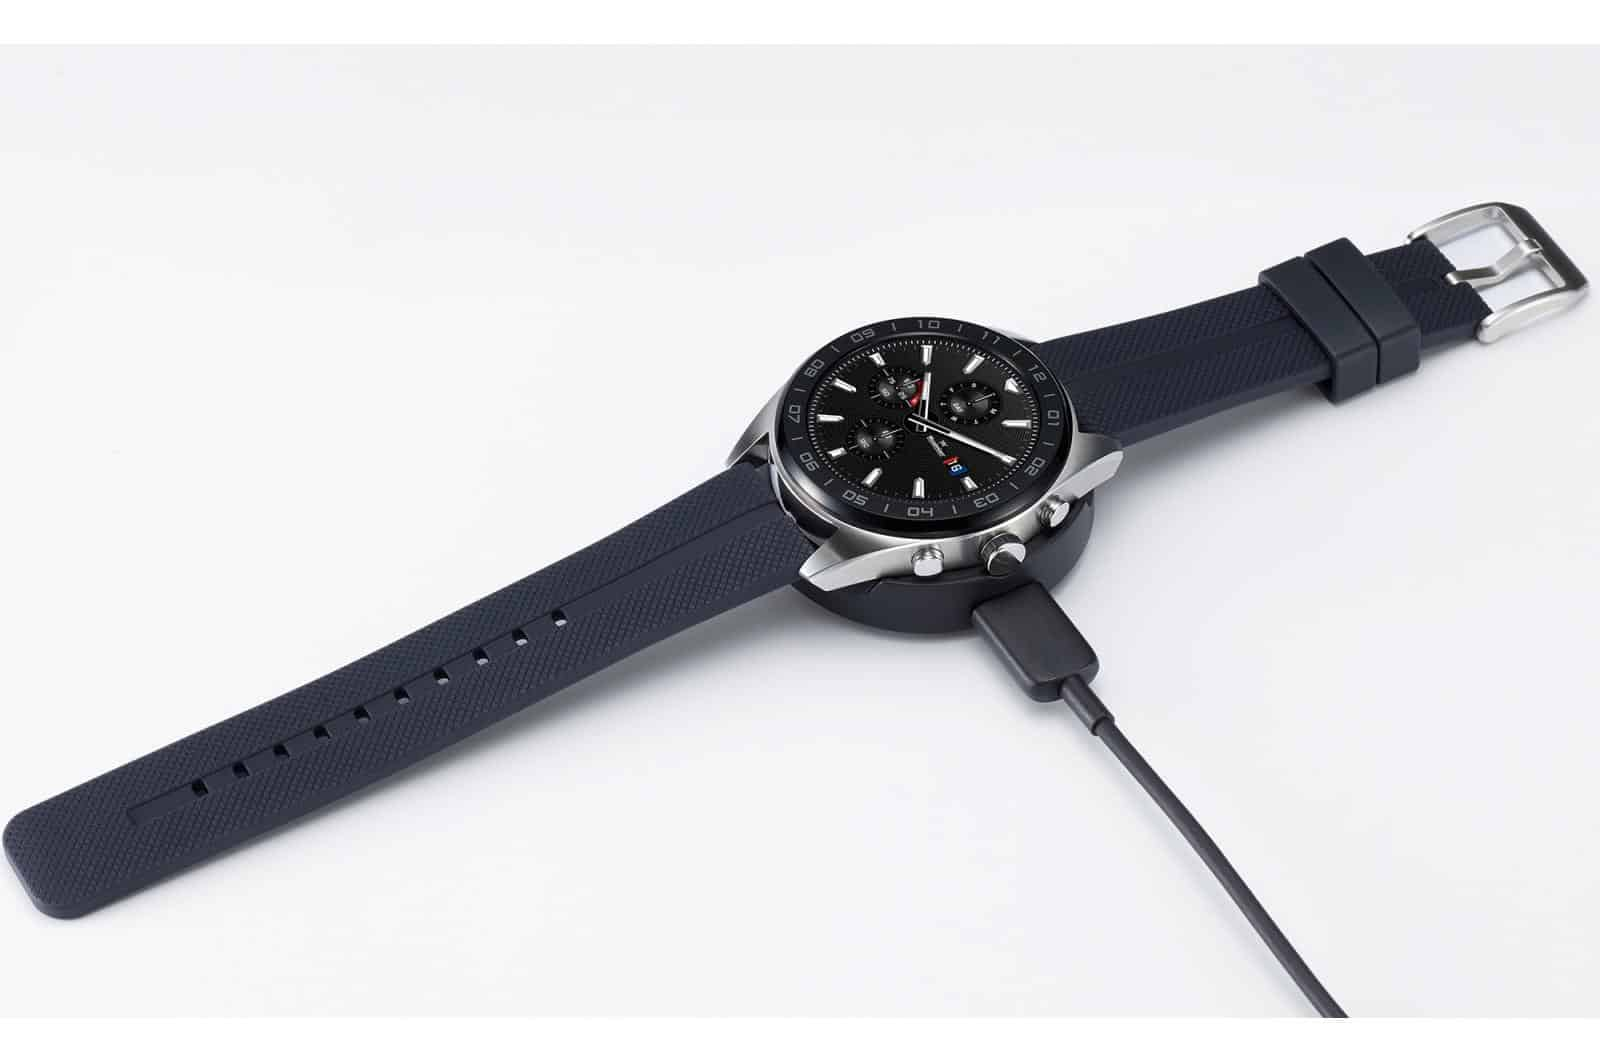 LG watch w7 watch band